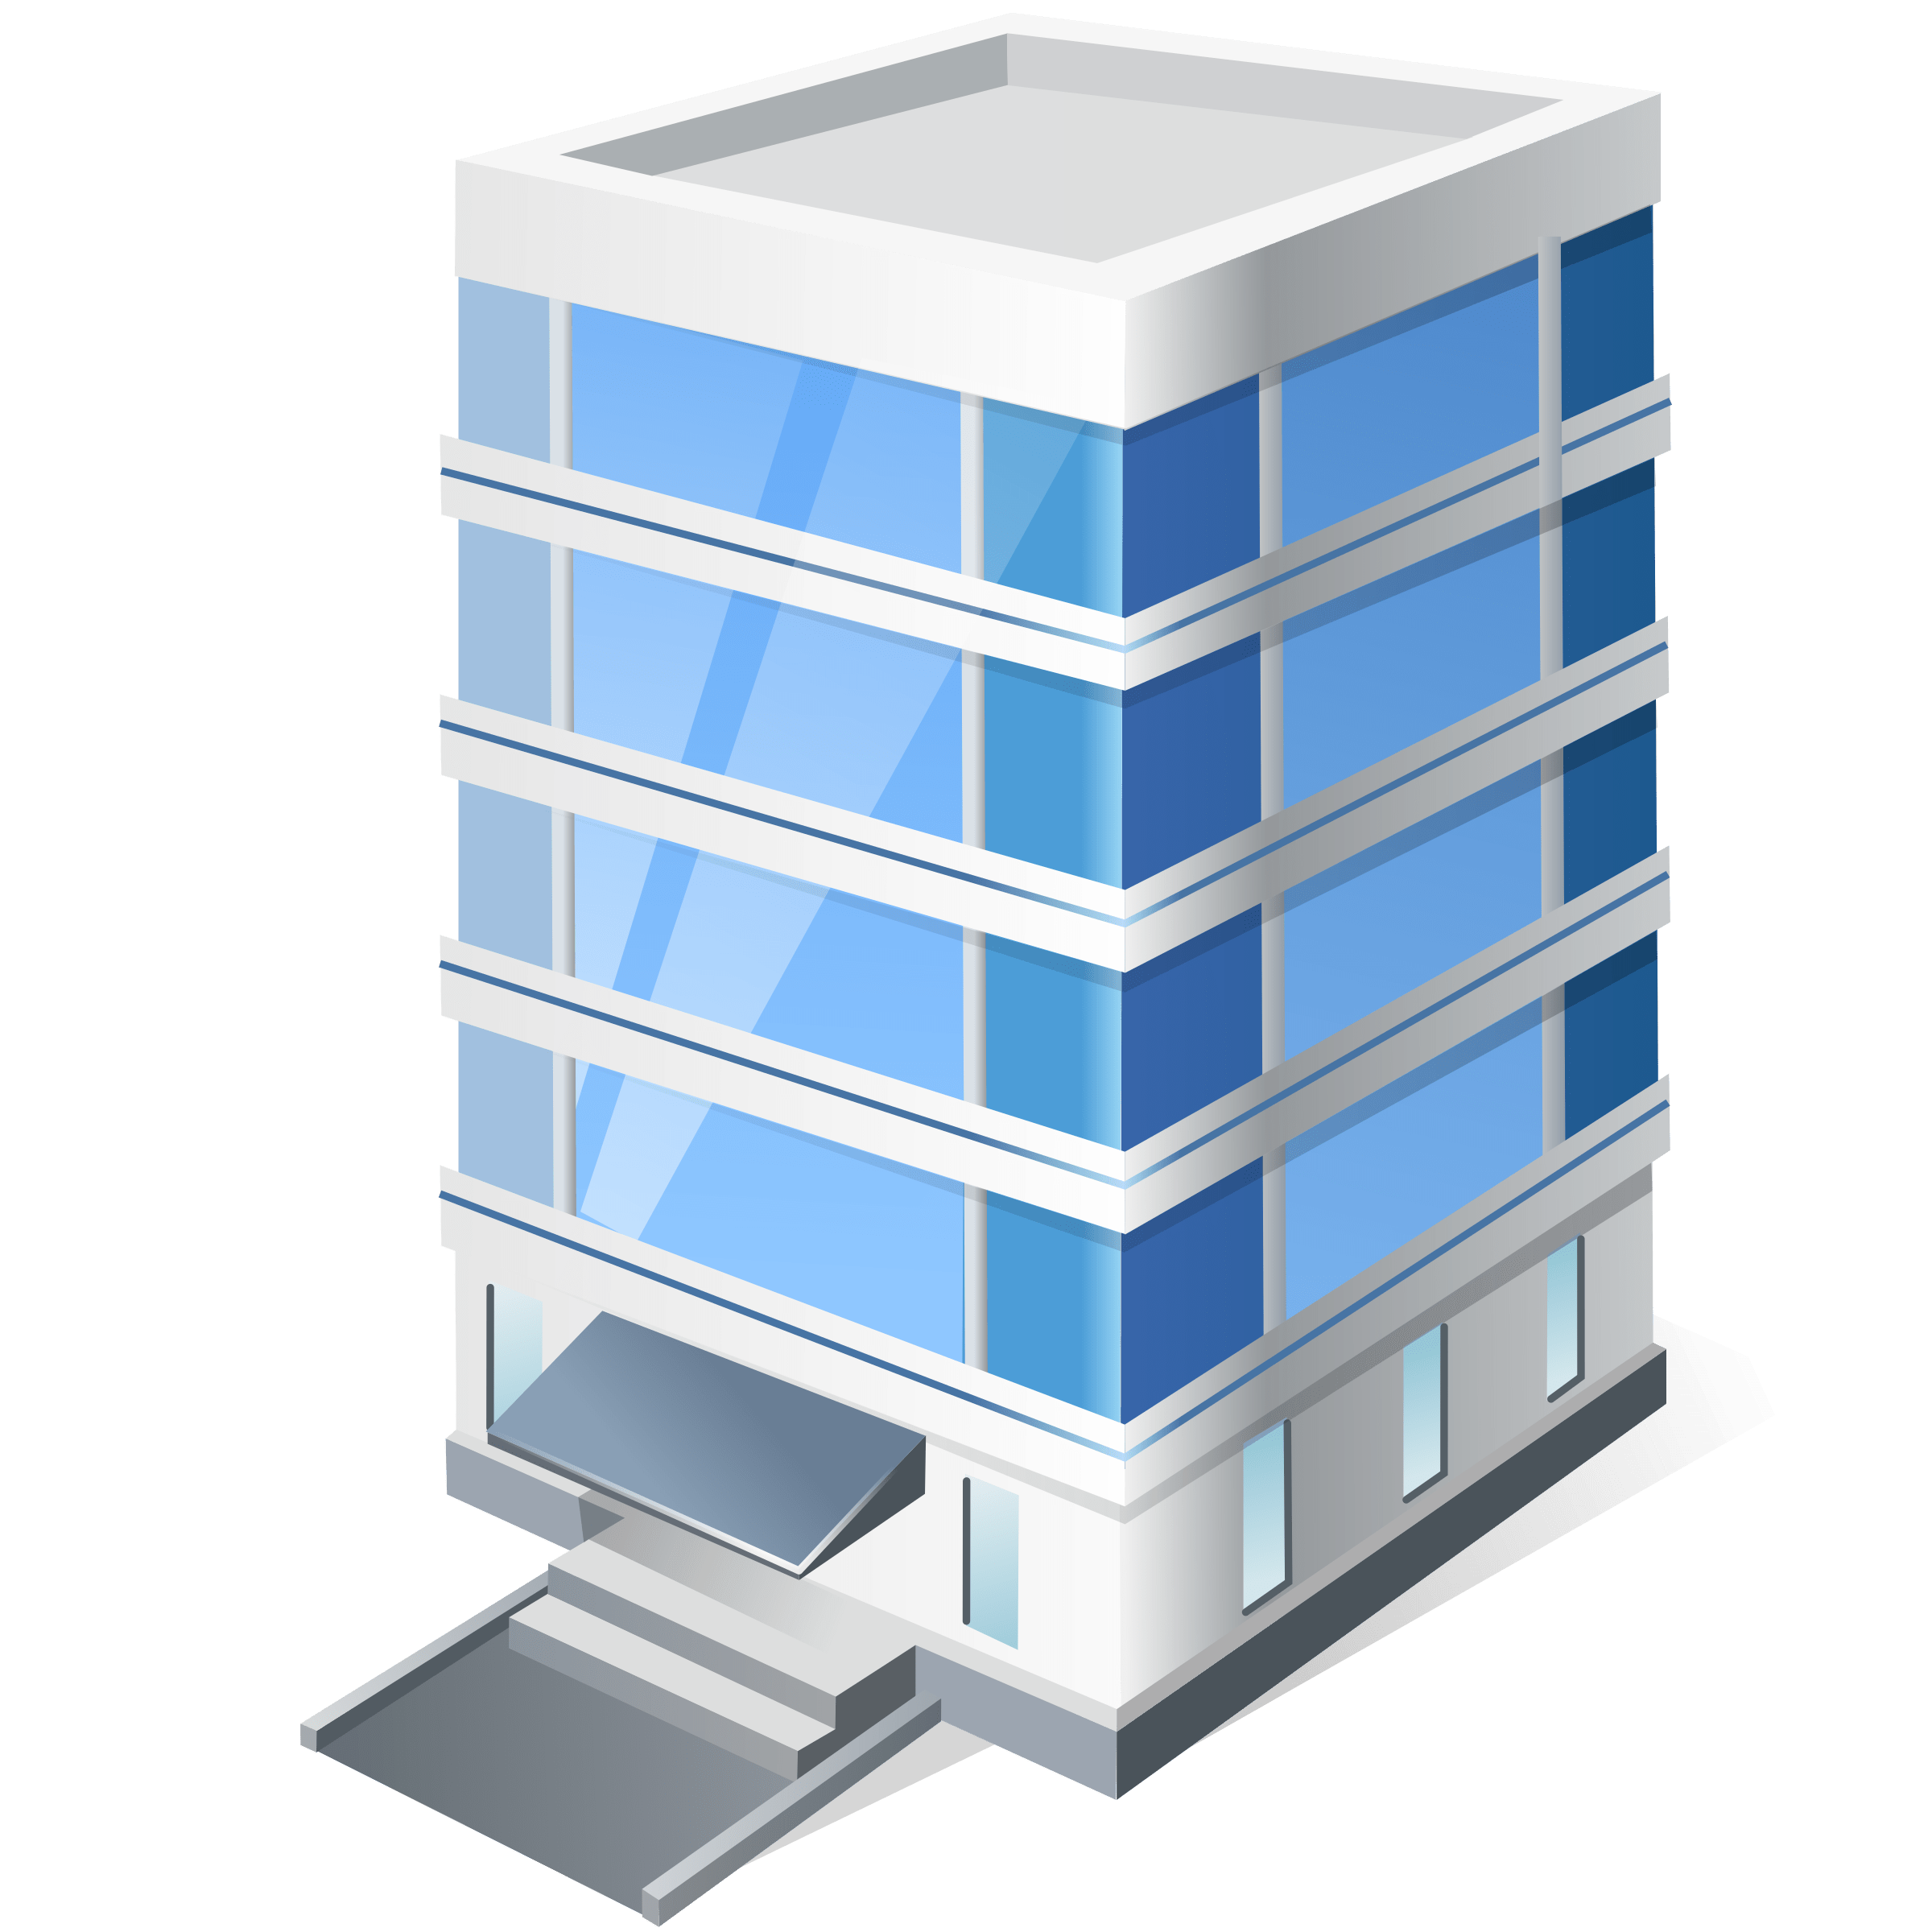 2400x2400 Building Images Clip Art Kidde 1276 Ipod Touch Wikipedia